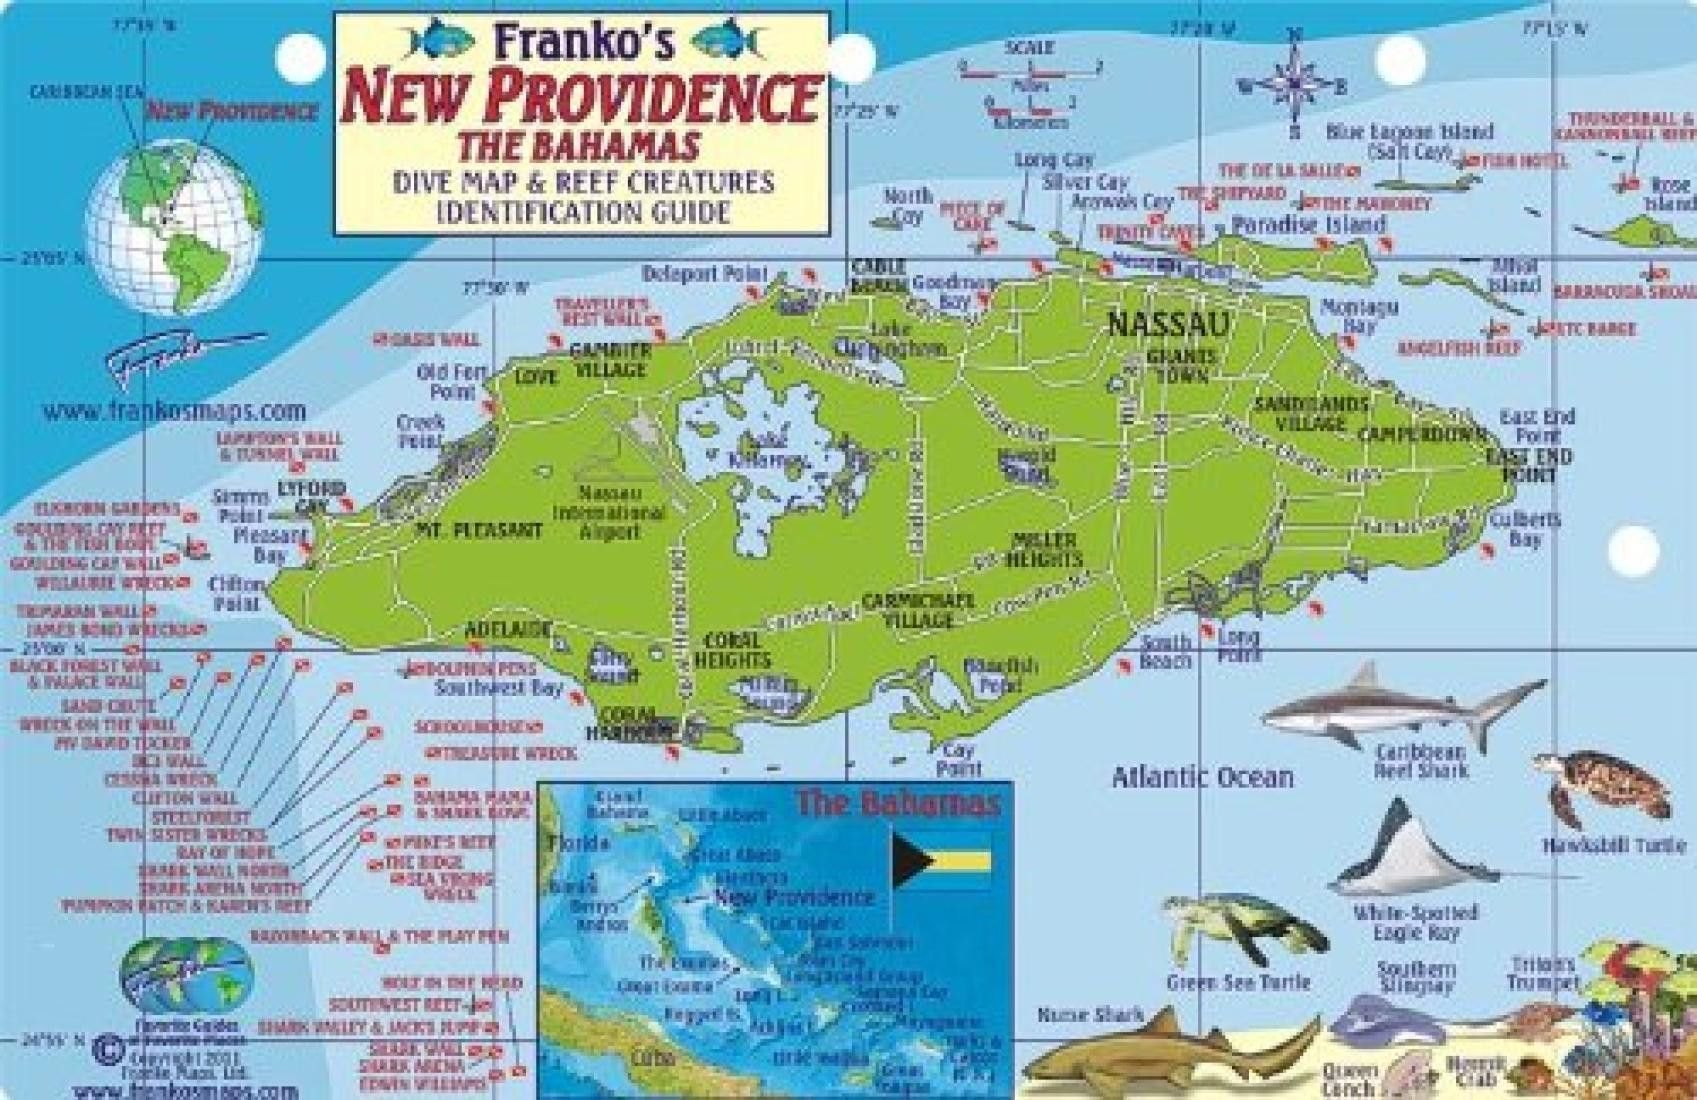 Bahamas Fish Card New Providence 2011 By Frankos Maps Ltd